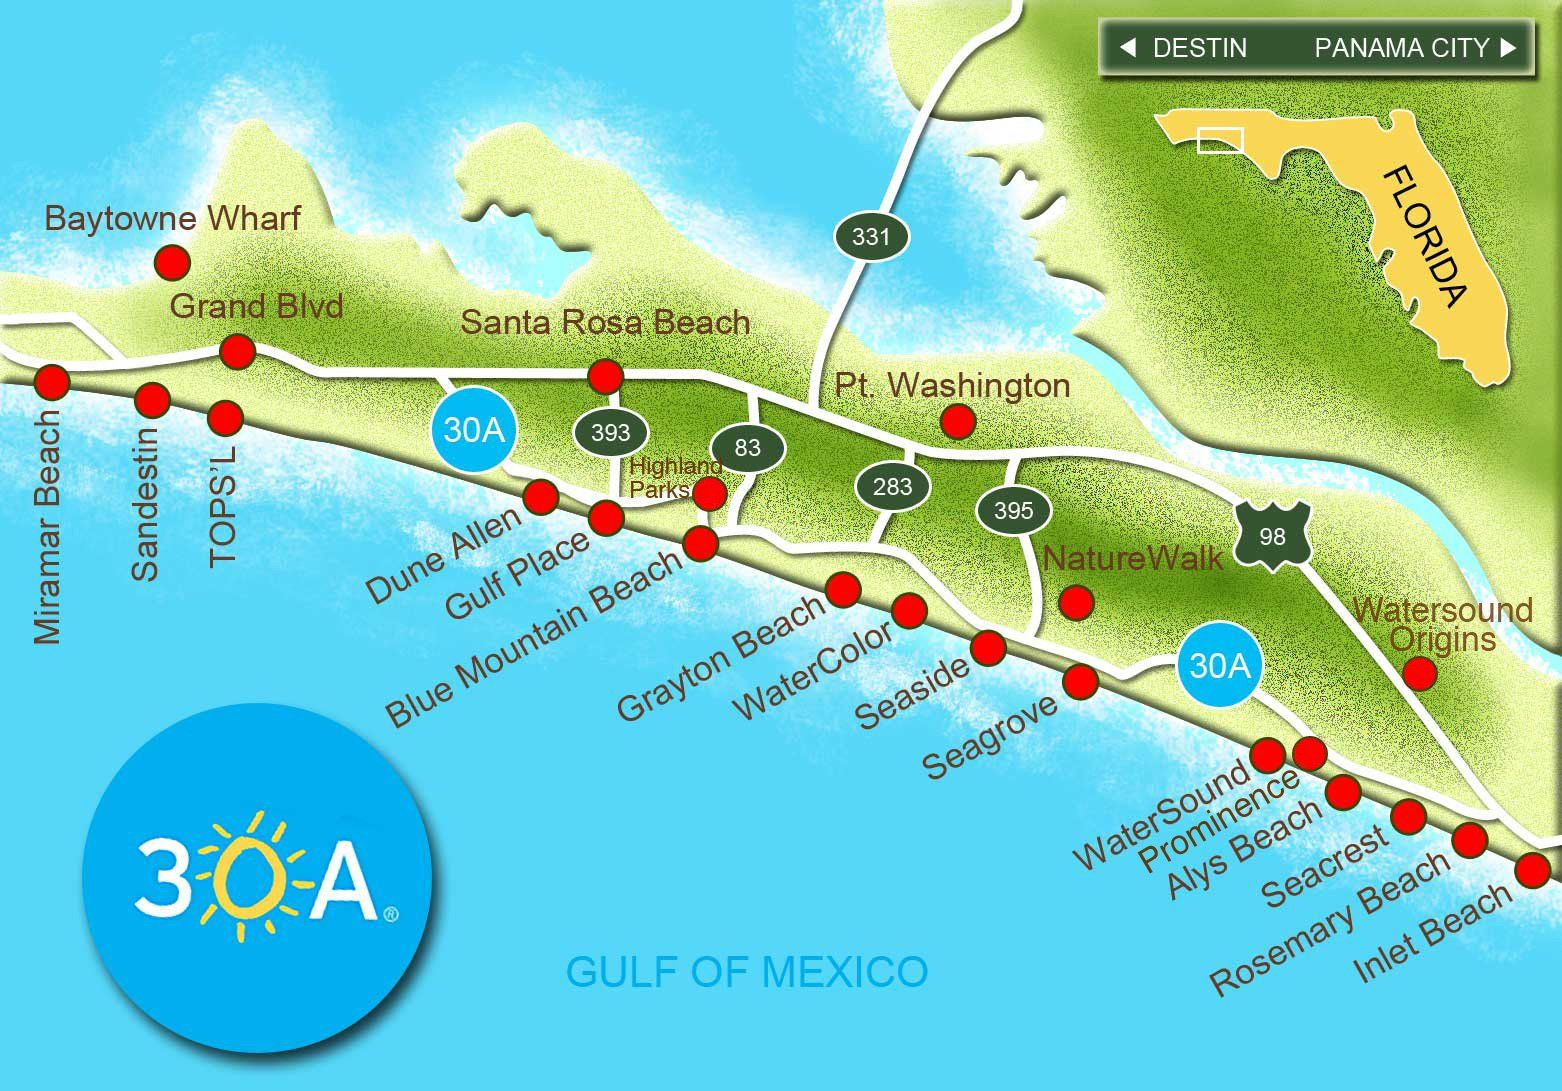 Map Of Scenic 30A And South Walton, Florida - 30A Panhandle Coast - Grayton Beach Florida Map